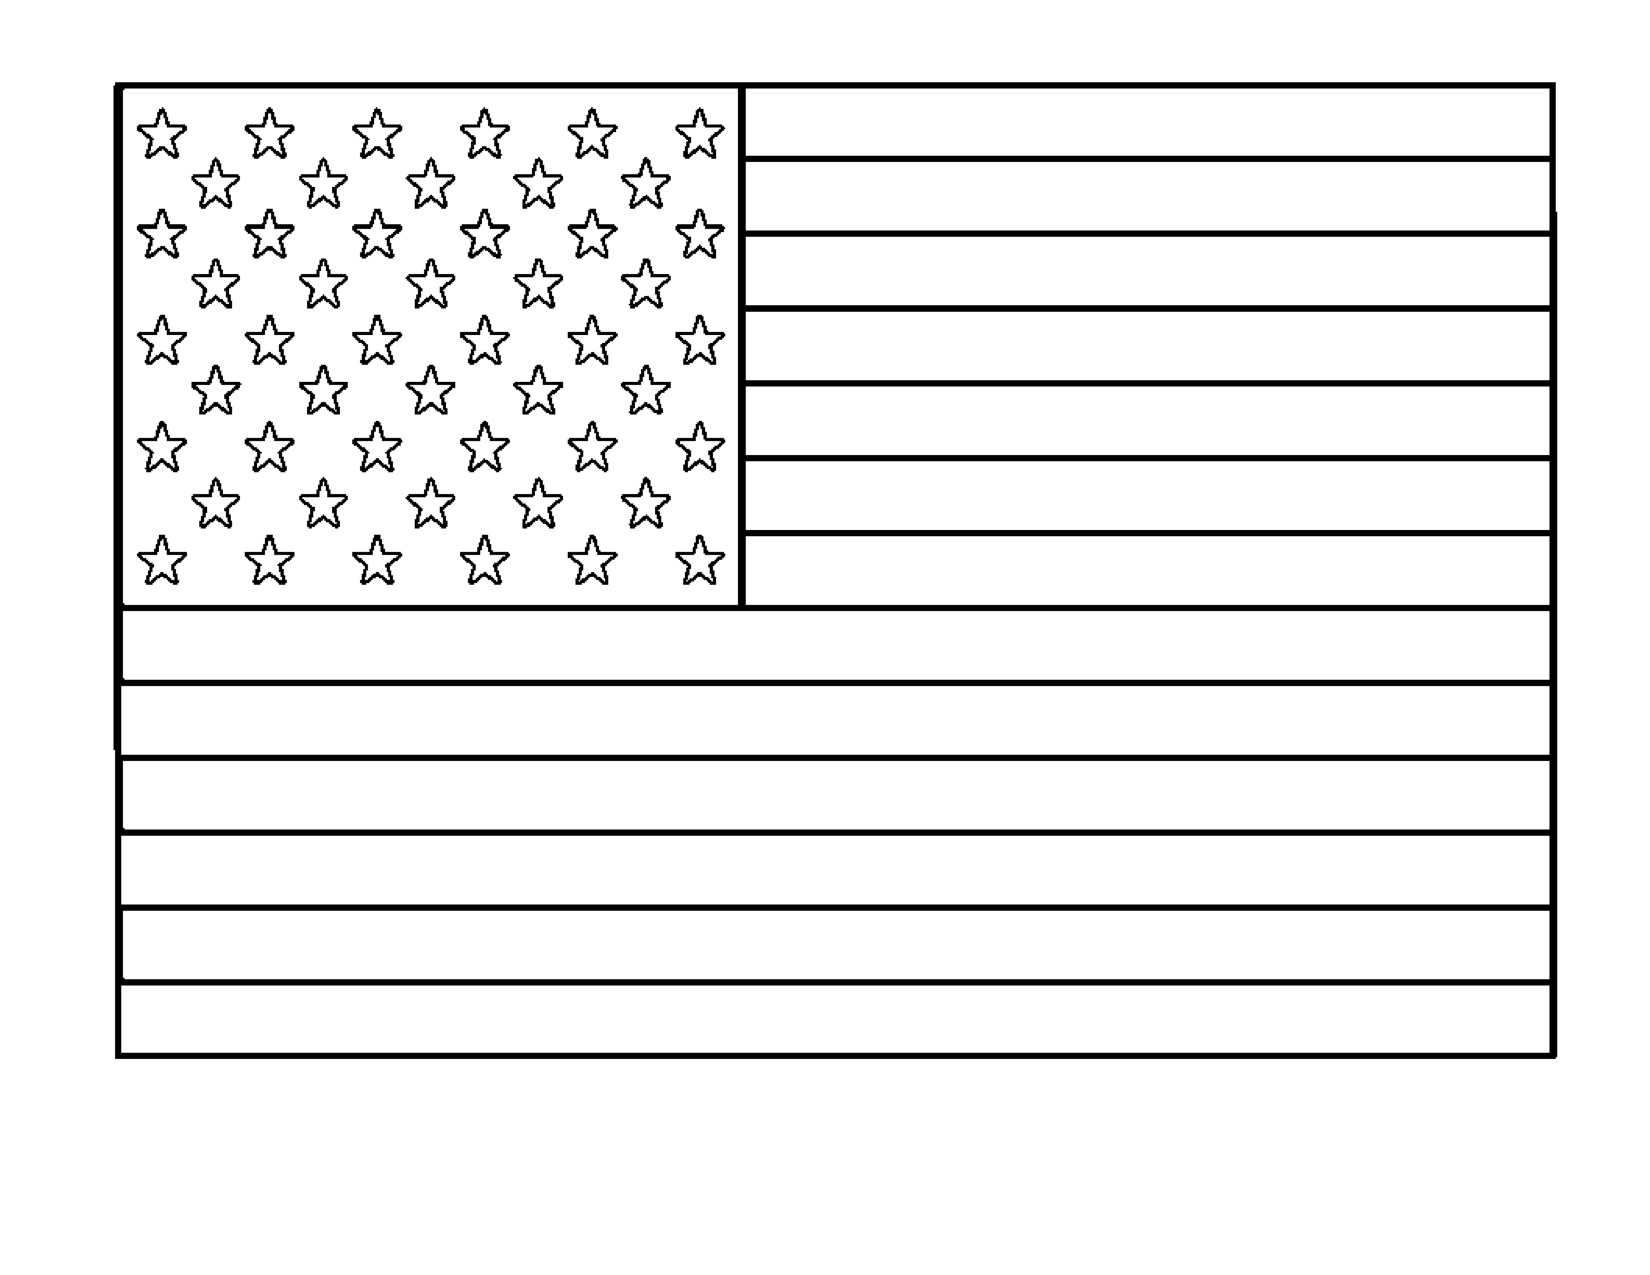 Library Of Pledge Of Allegiance Vector Royalty Free